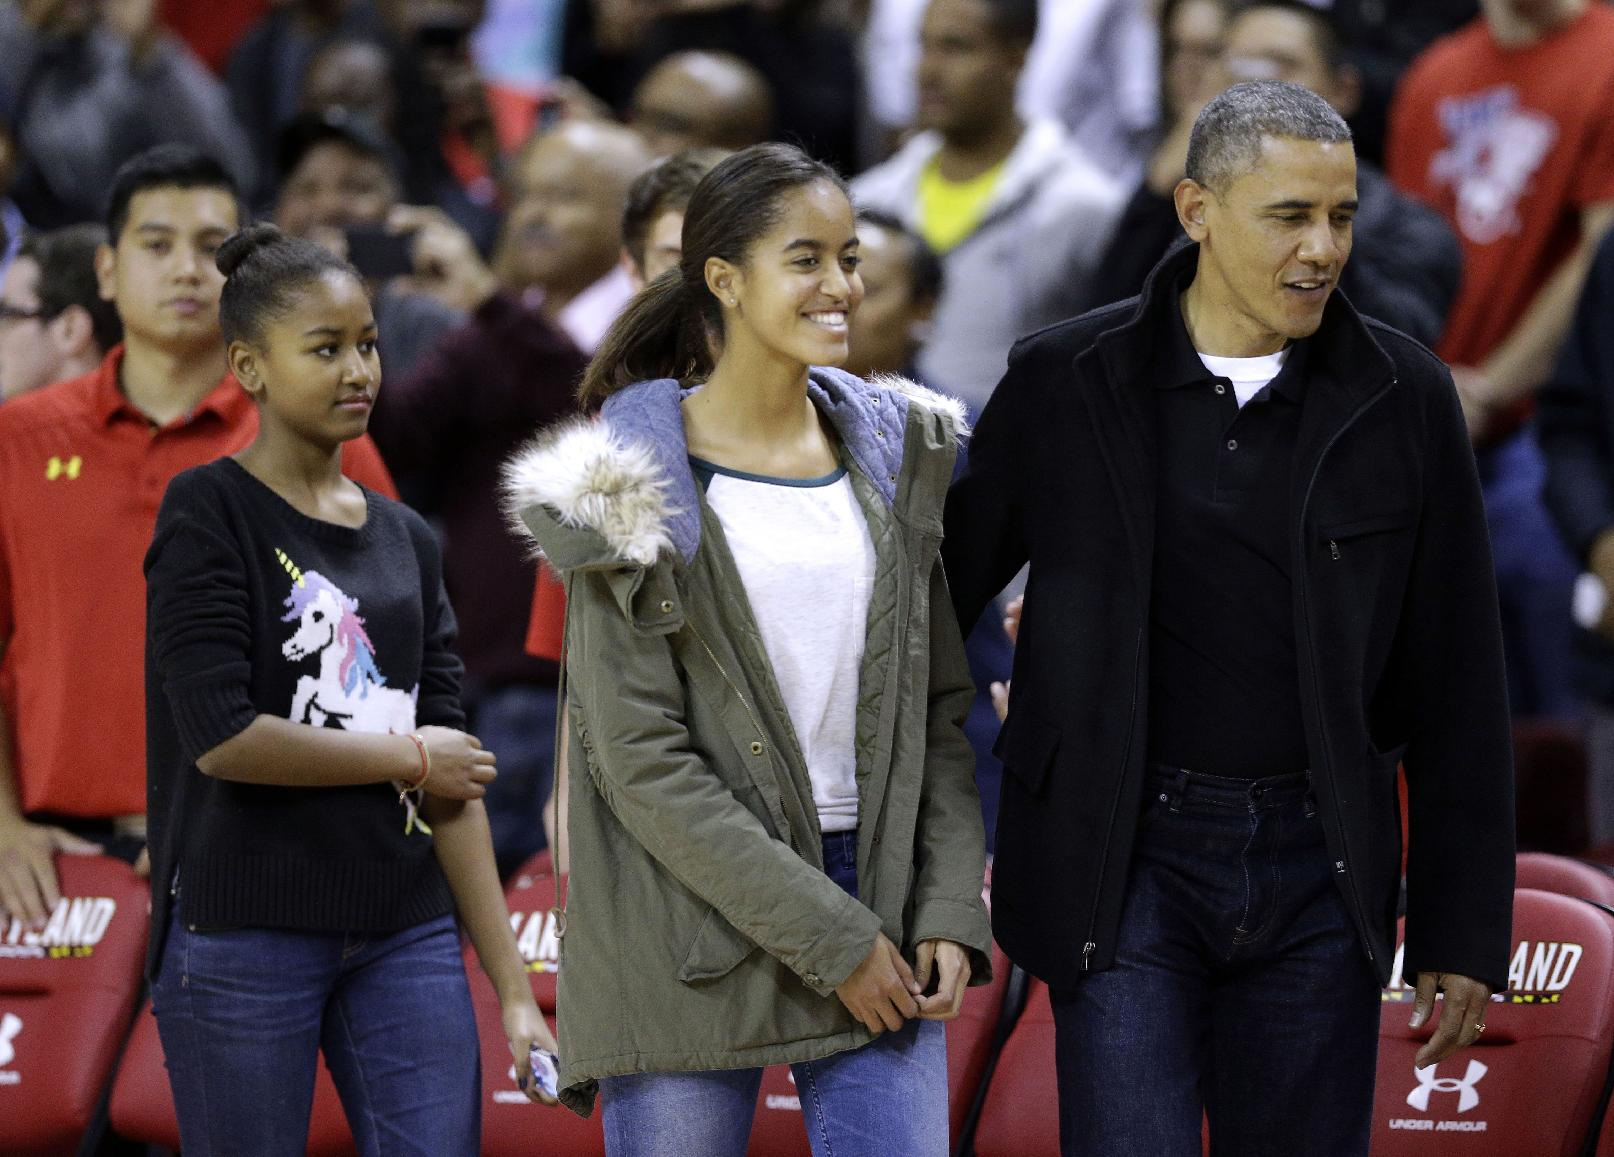 United States President Barack Obama, right, walks to his seat with daughters Sasha, left, and Malia, center, before an NCAA college basketball game between Maryland and Oregon State in College Park, Md., Sunday, Nov. 17, 2013. Obama's brother-in-law is Oregon State head coach Craig Robinson